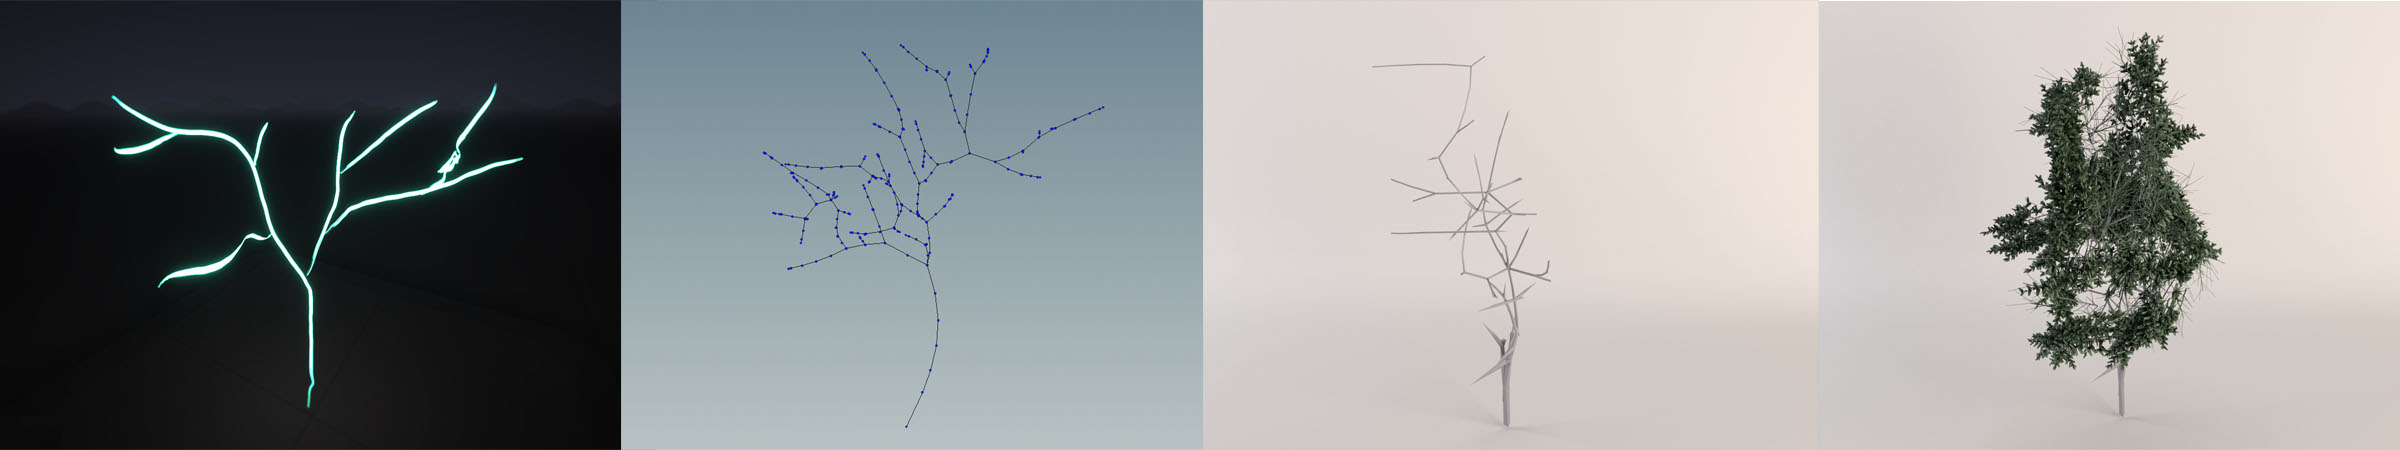 willowGAN, a study in neurally-aided 3D VR sketch-to-object tree modeling. From left to right: Tilt Brush input sketch, edge-to- point tree representation, generated tree mesh from the network, generated tree mesh with added leaves and twigs.